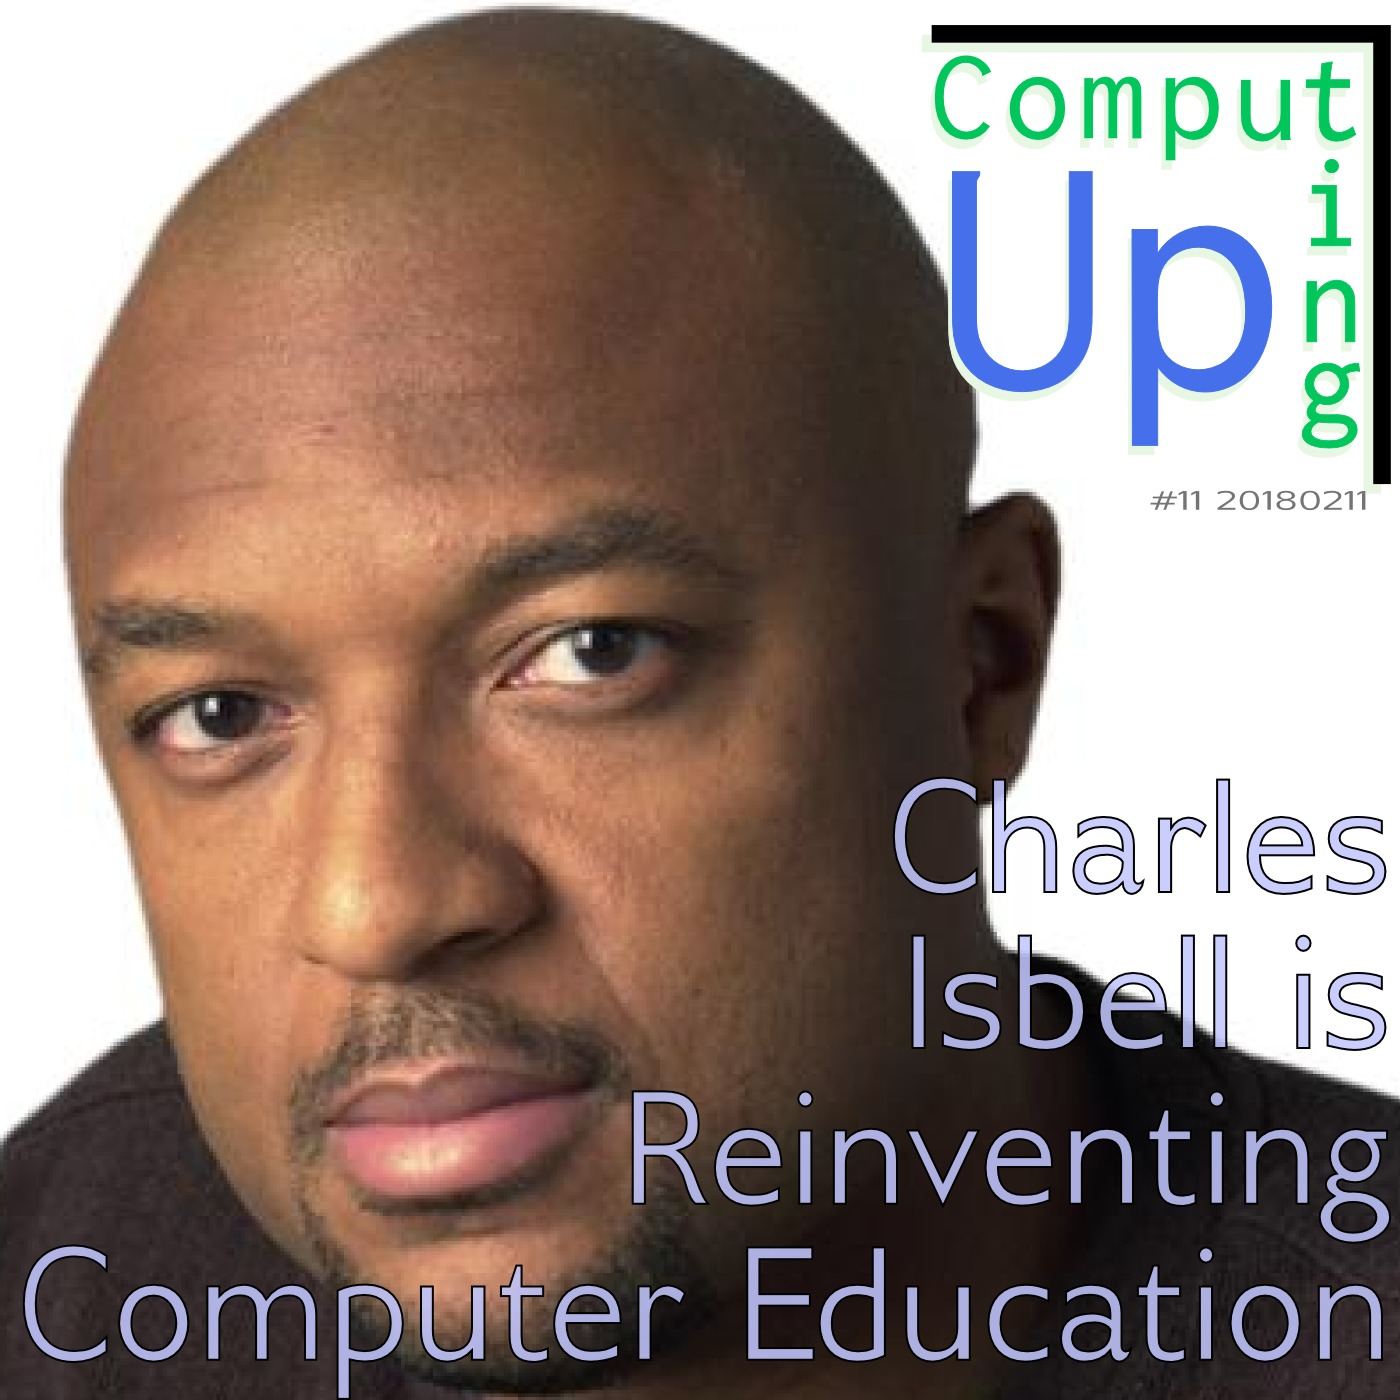 Artwork for Charles Isbell is Reinventing Computer Education - Computing Up Eleventh Conversation